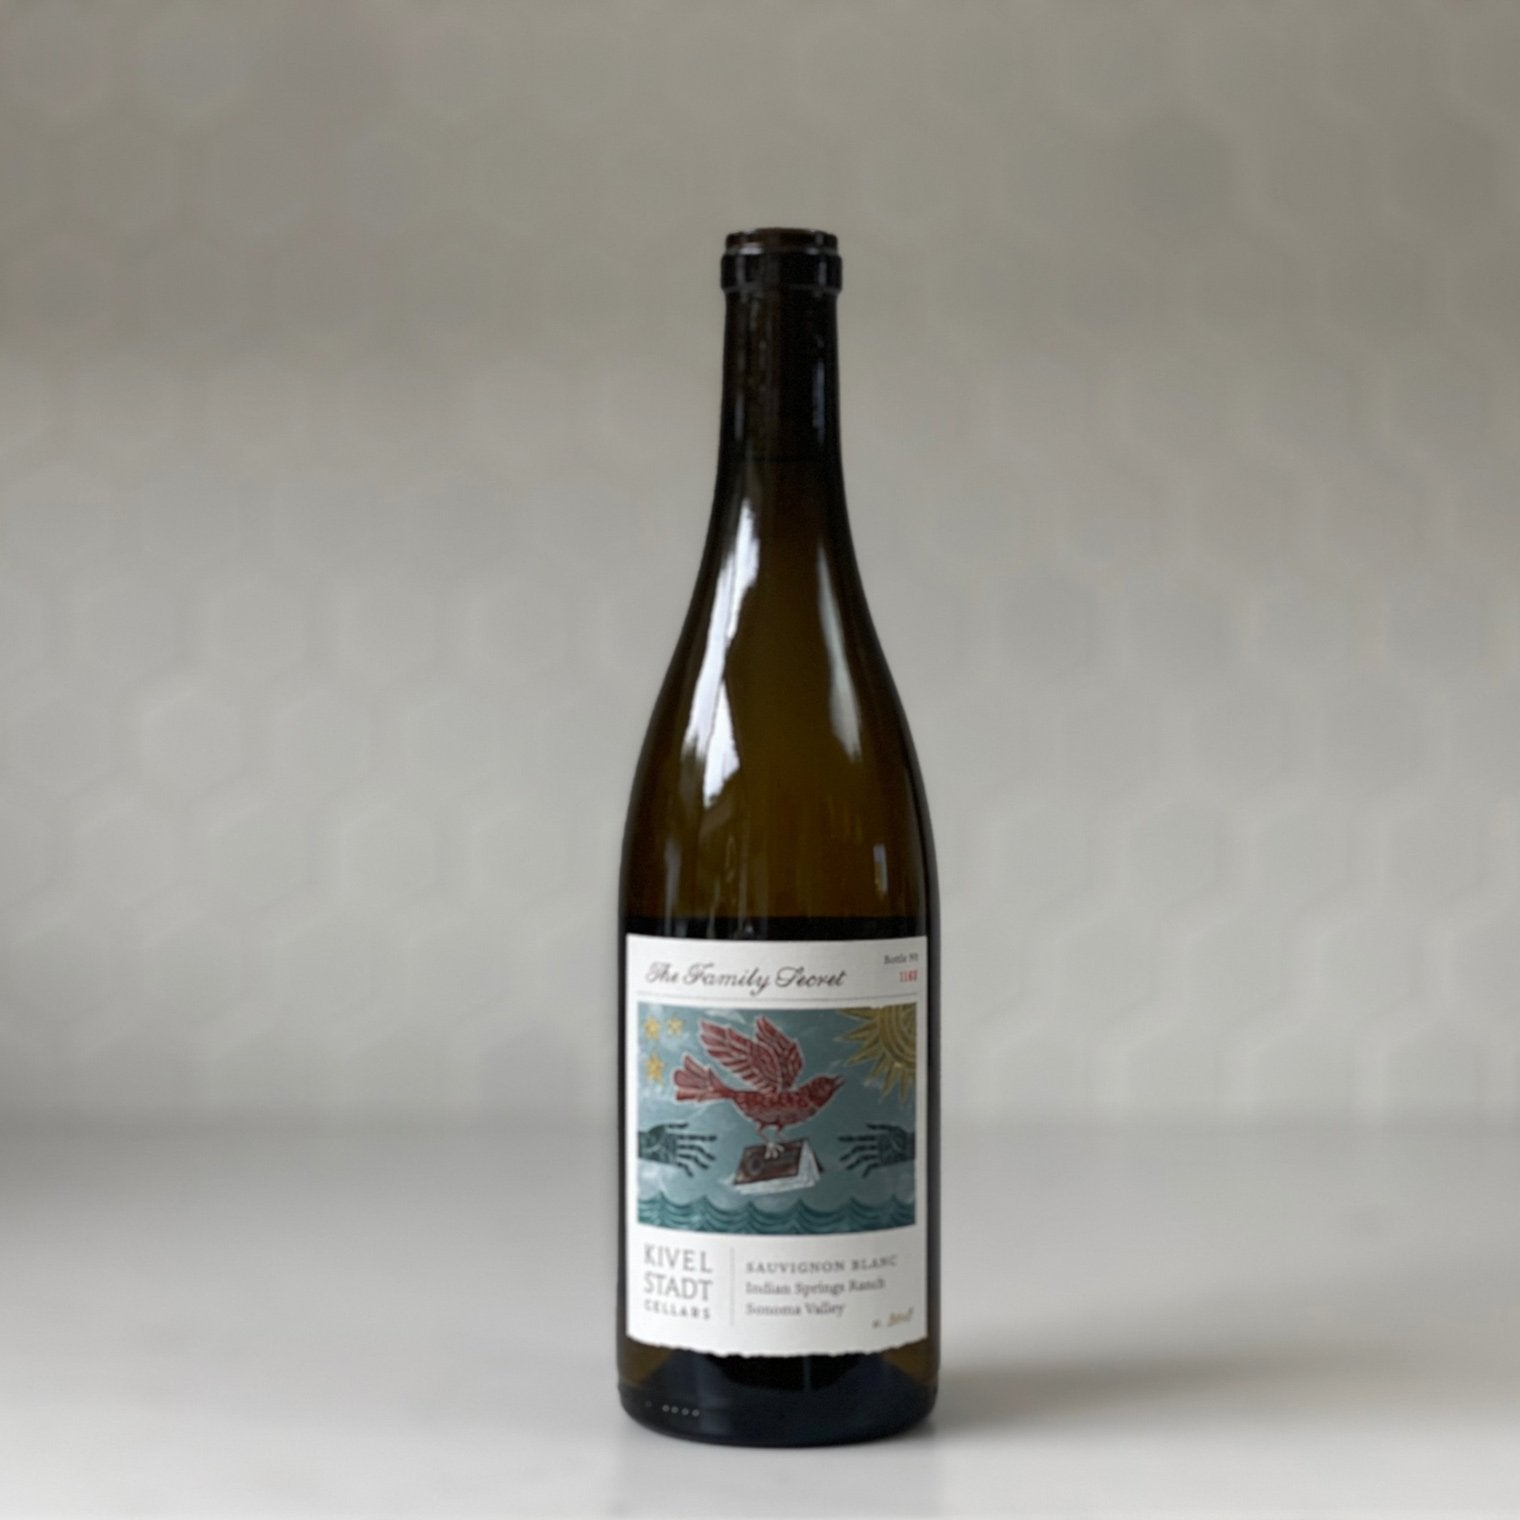 "KIVELSTADT CELLARS ""the family secret"" sauvignon blanc 2018"